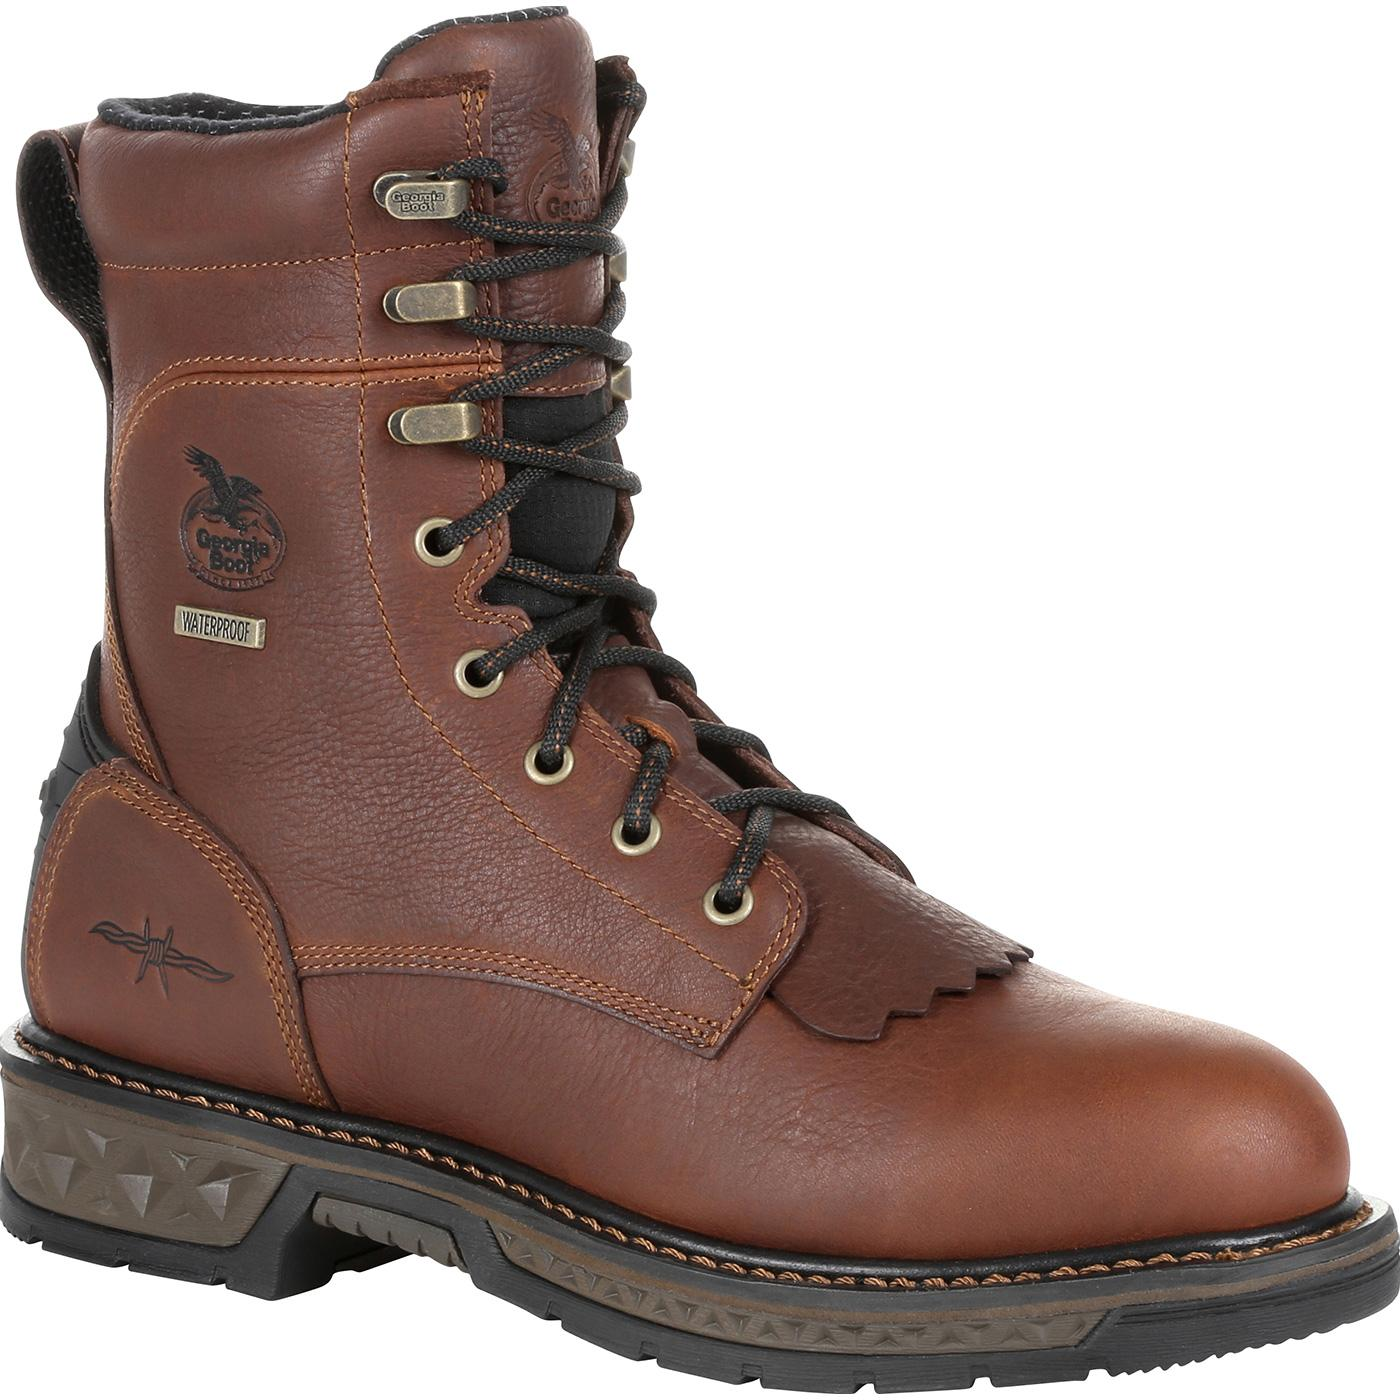 182bbe2ff14 Georgia Boot Carbo-Tec LT Waterproof Lacer Work Boot